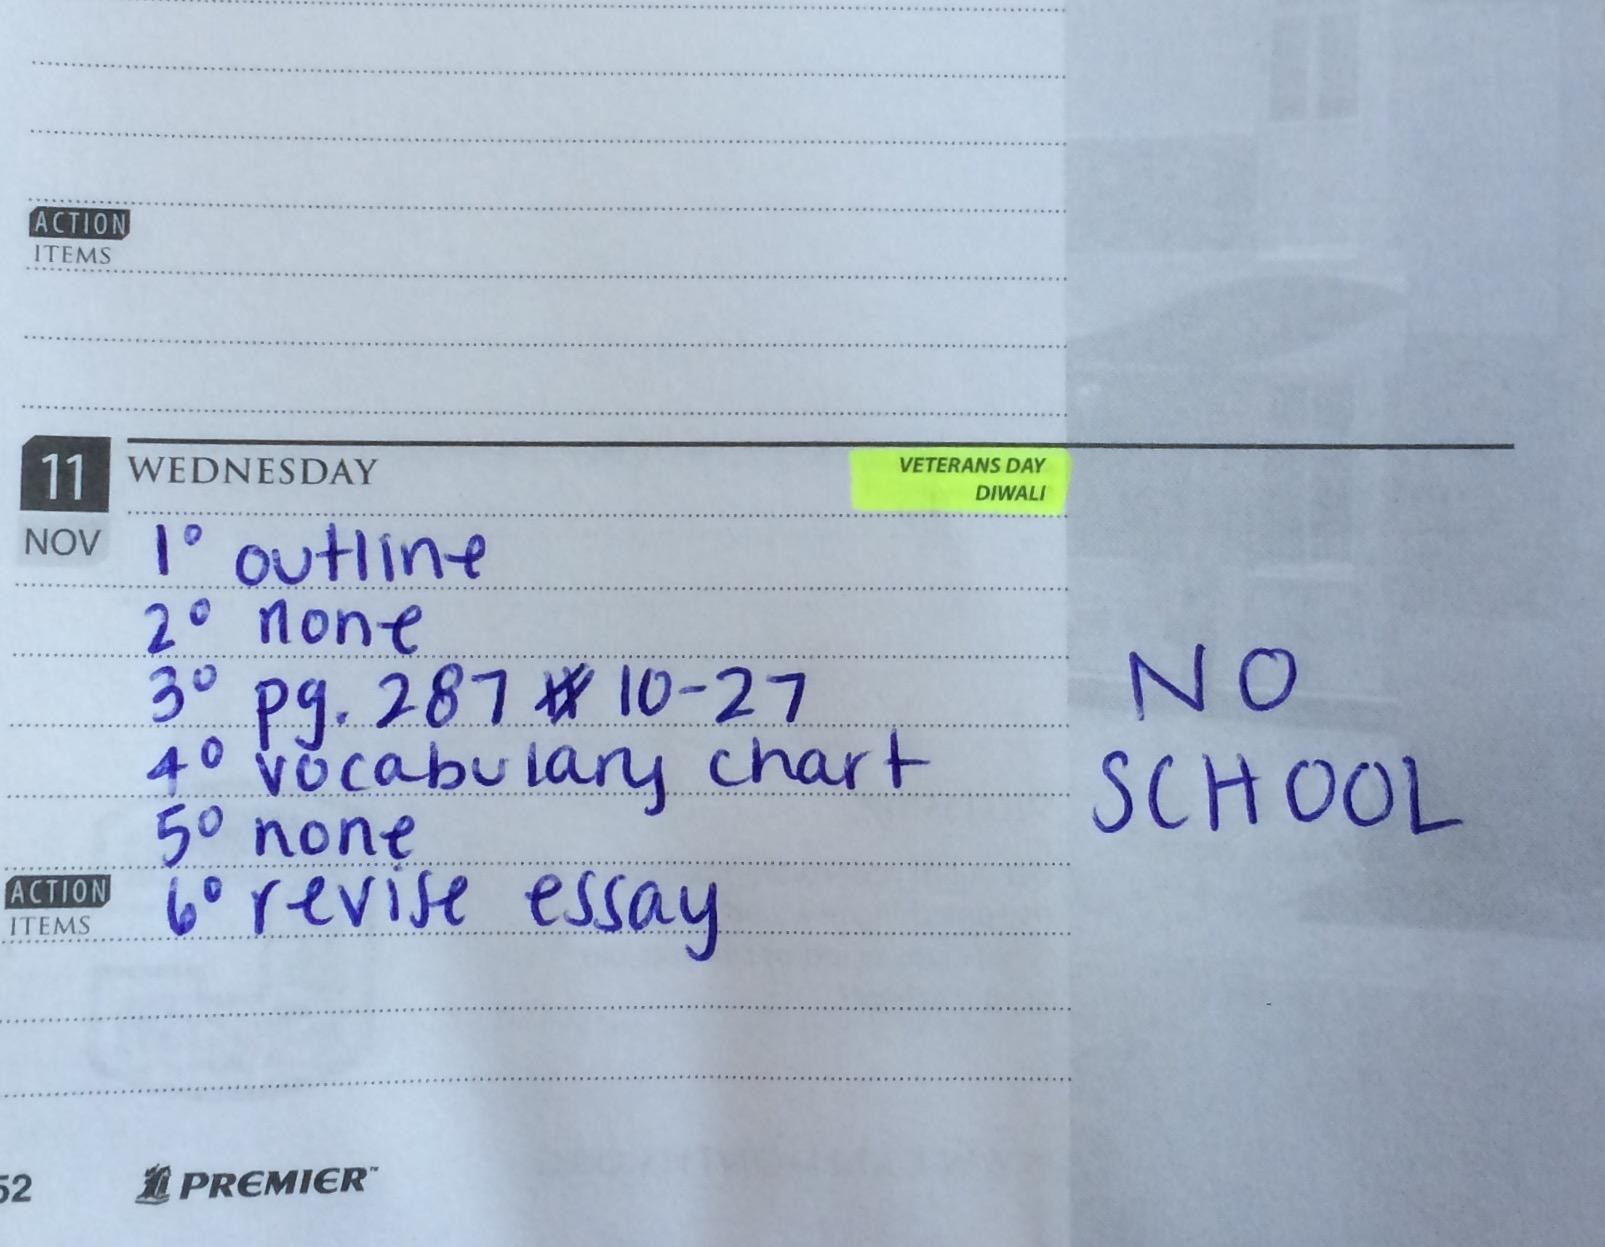 Although it is their day off, students still have a list of homework assignments to complete.